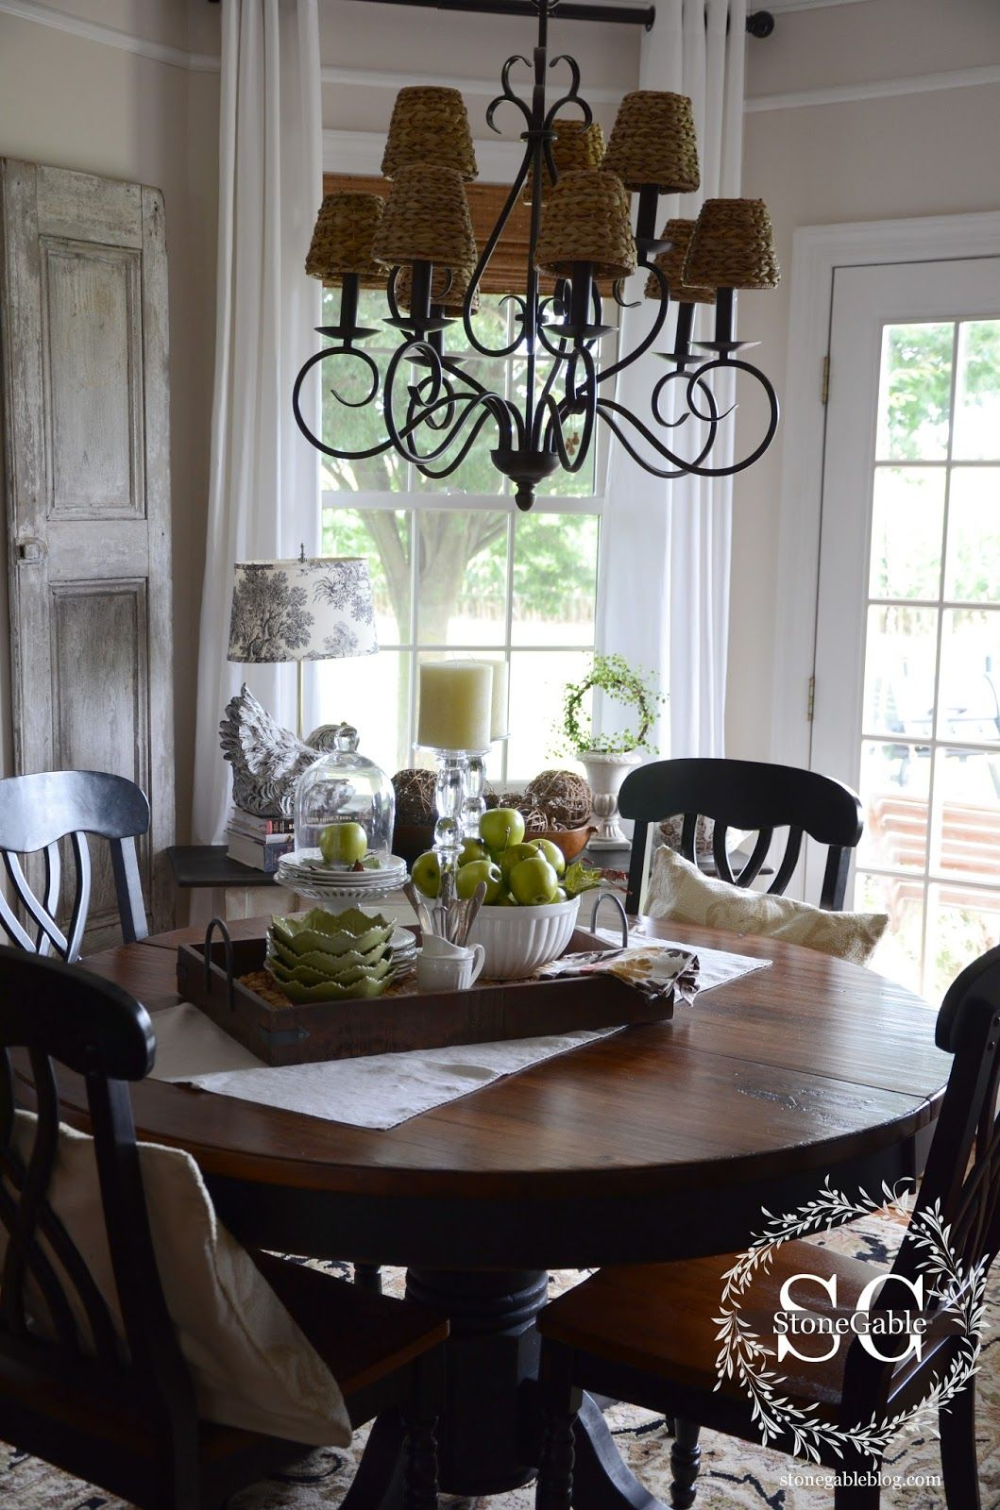 How To Decorate A Kitchen Table For Everyday In 2020 Dining Room